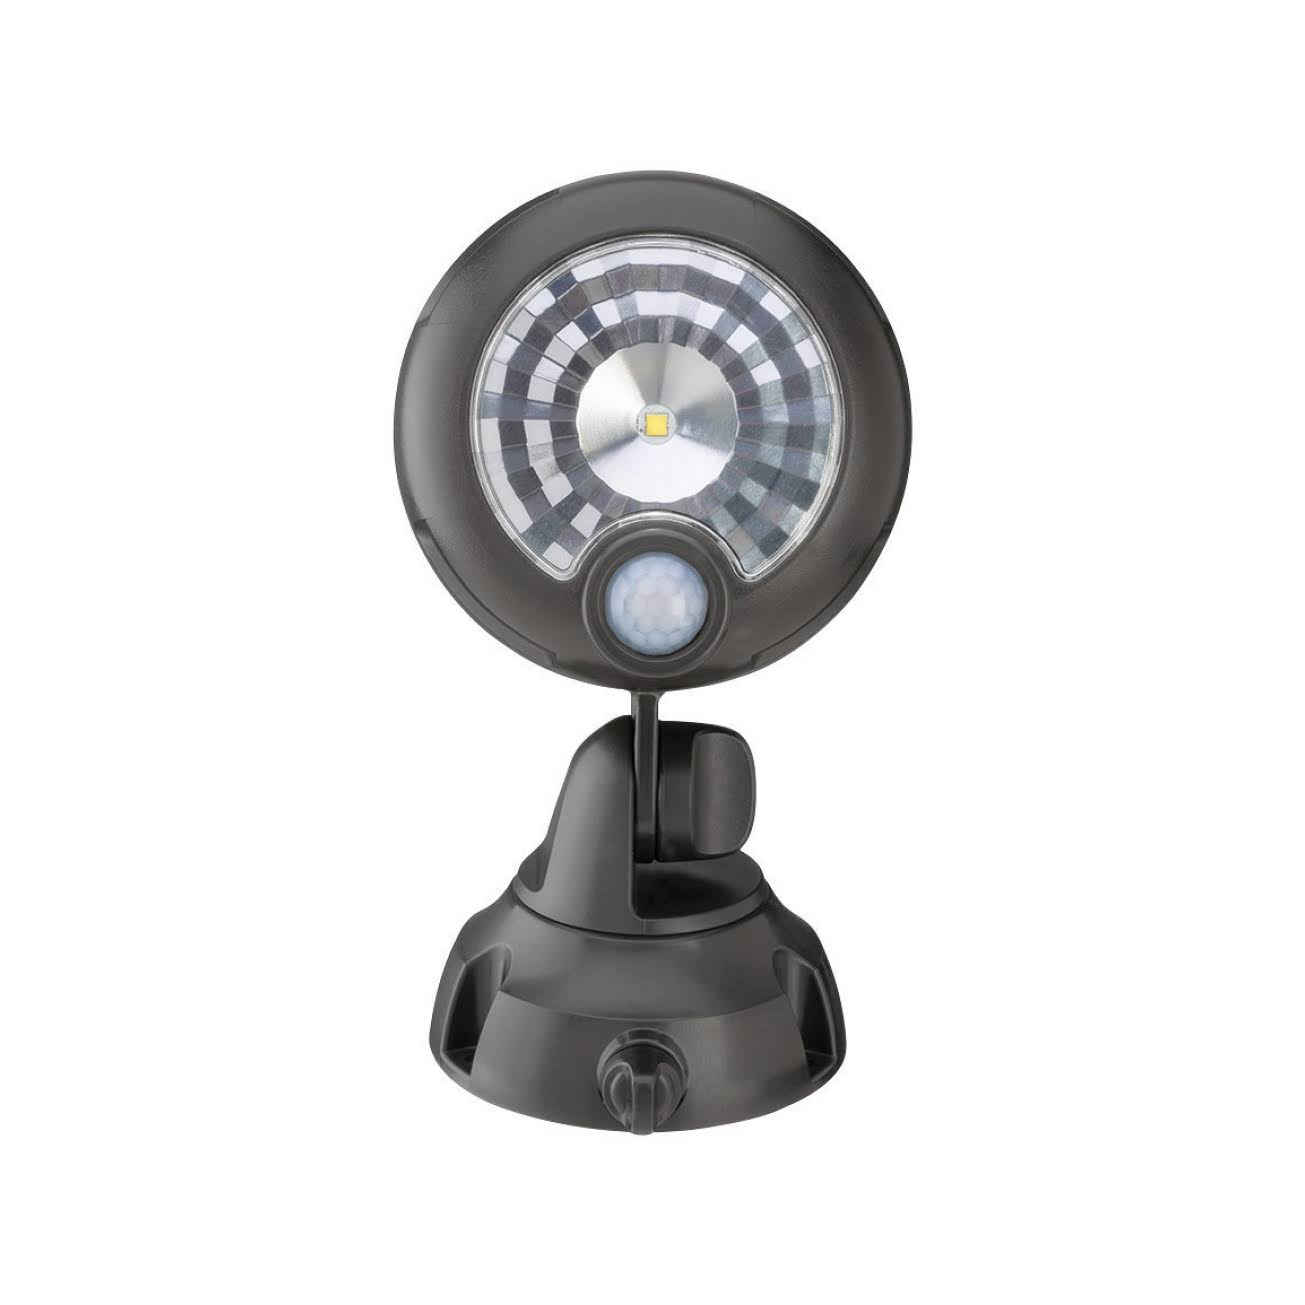 Mr Beams Wireless Sensing Outdoor LED Security Spot Light